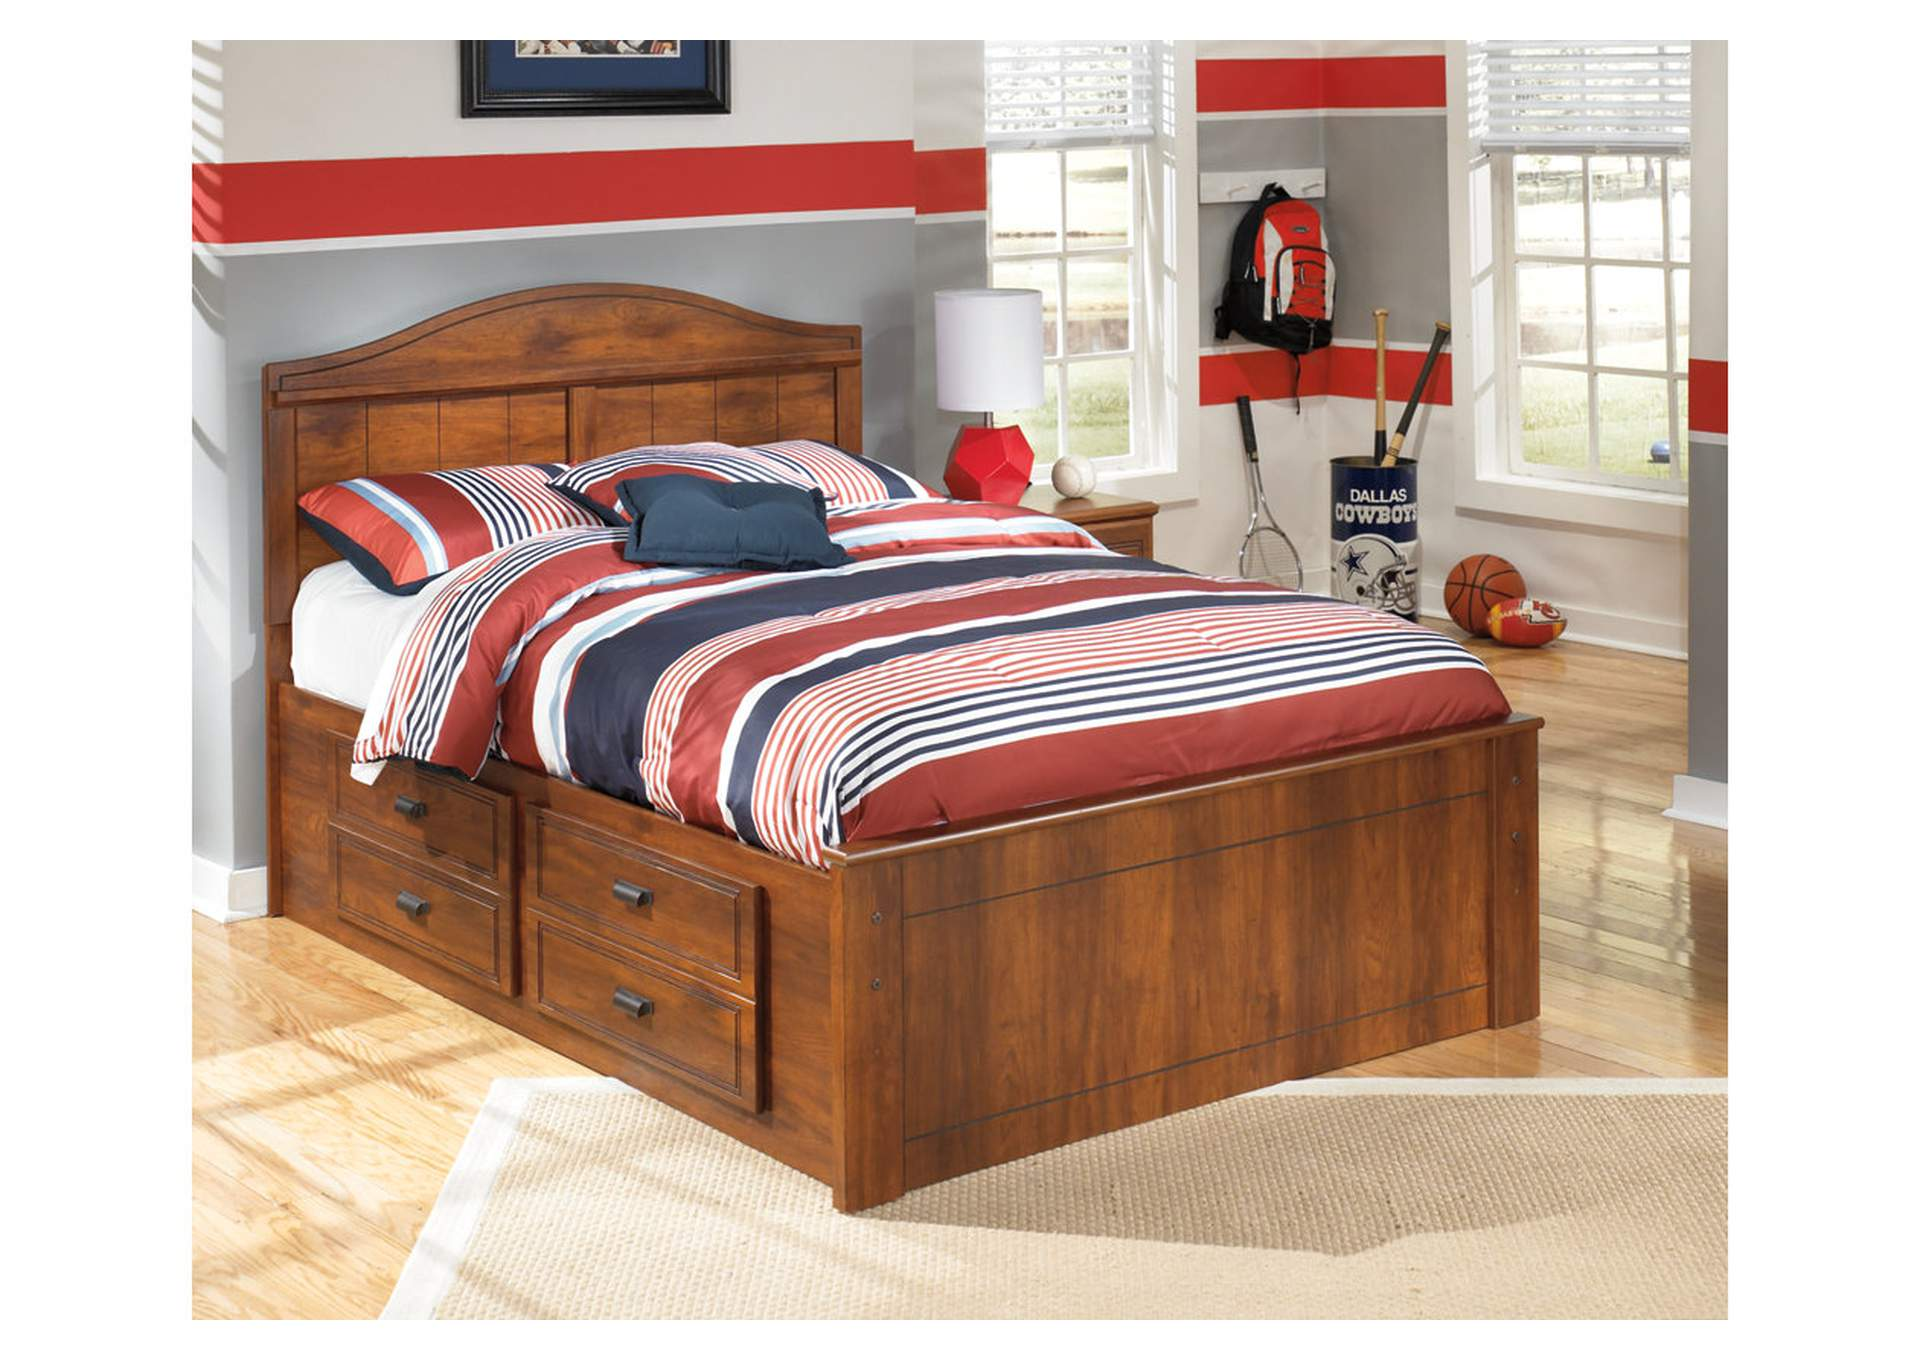 Barchan Full Panel Storage Bed,Signature Design by Ashley